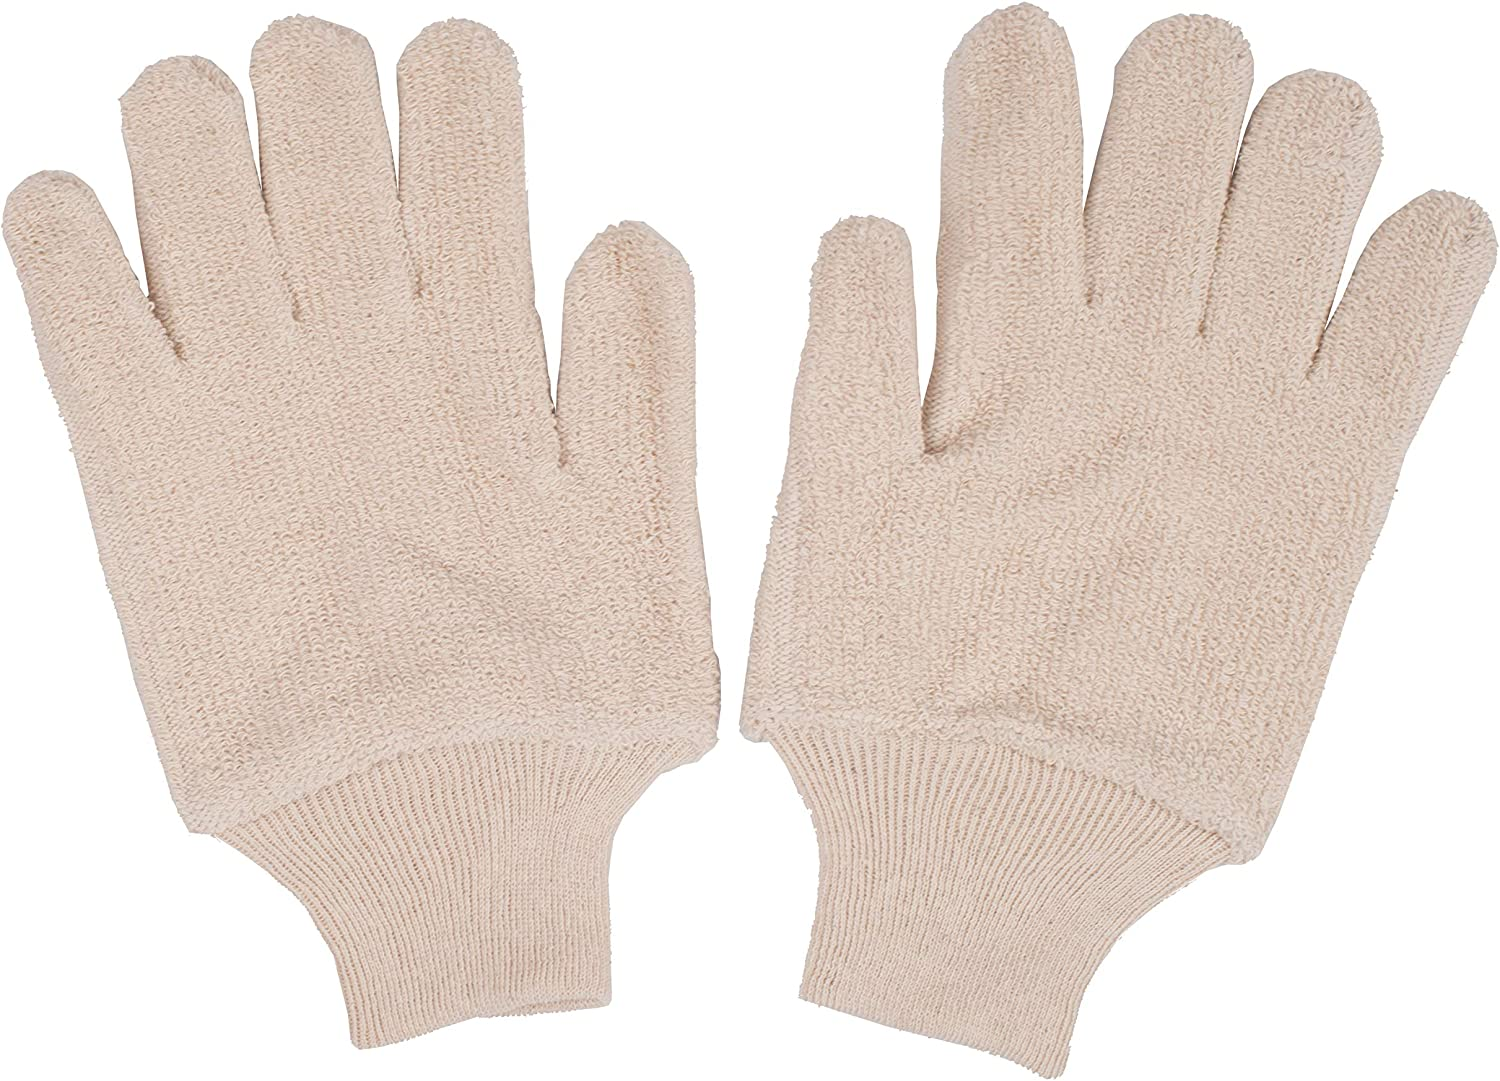 12 pairs Terry Cloth Gloves 32 oz. Industrial Oven Gloves for Heat Care. General Purpose Gloves with Elestic Wrist. Heat Resistant Gloves for Baking, Cooking Needs. Natural Color.